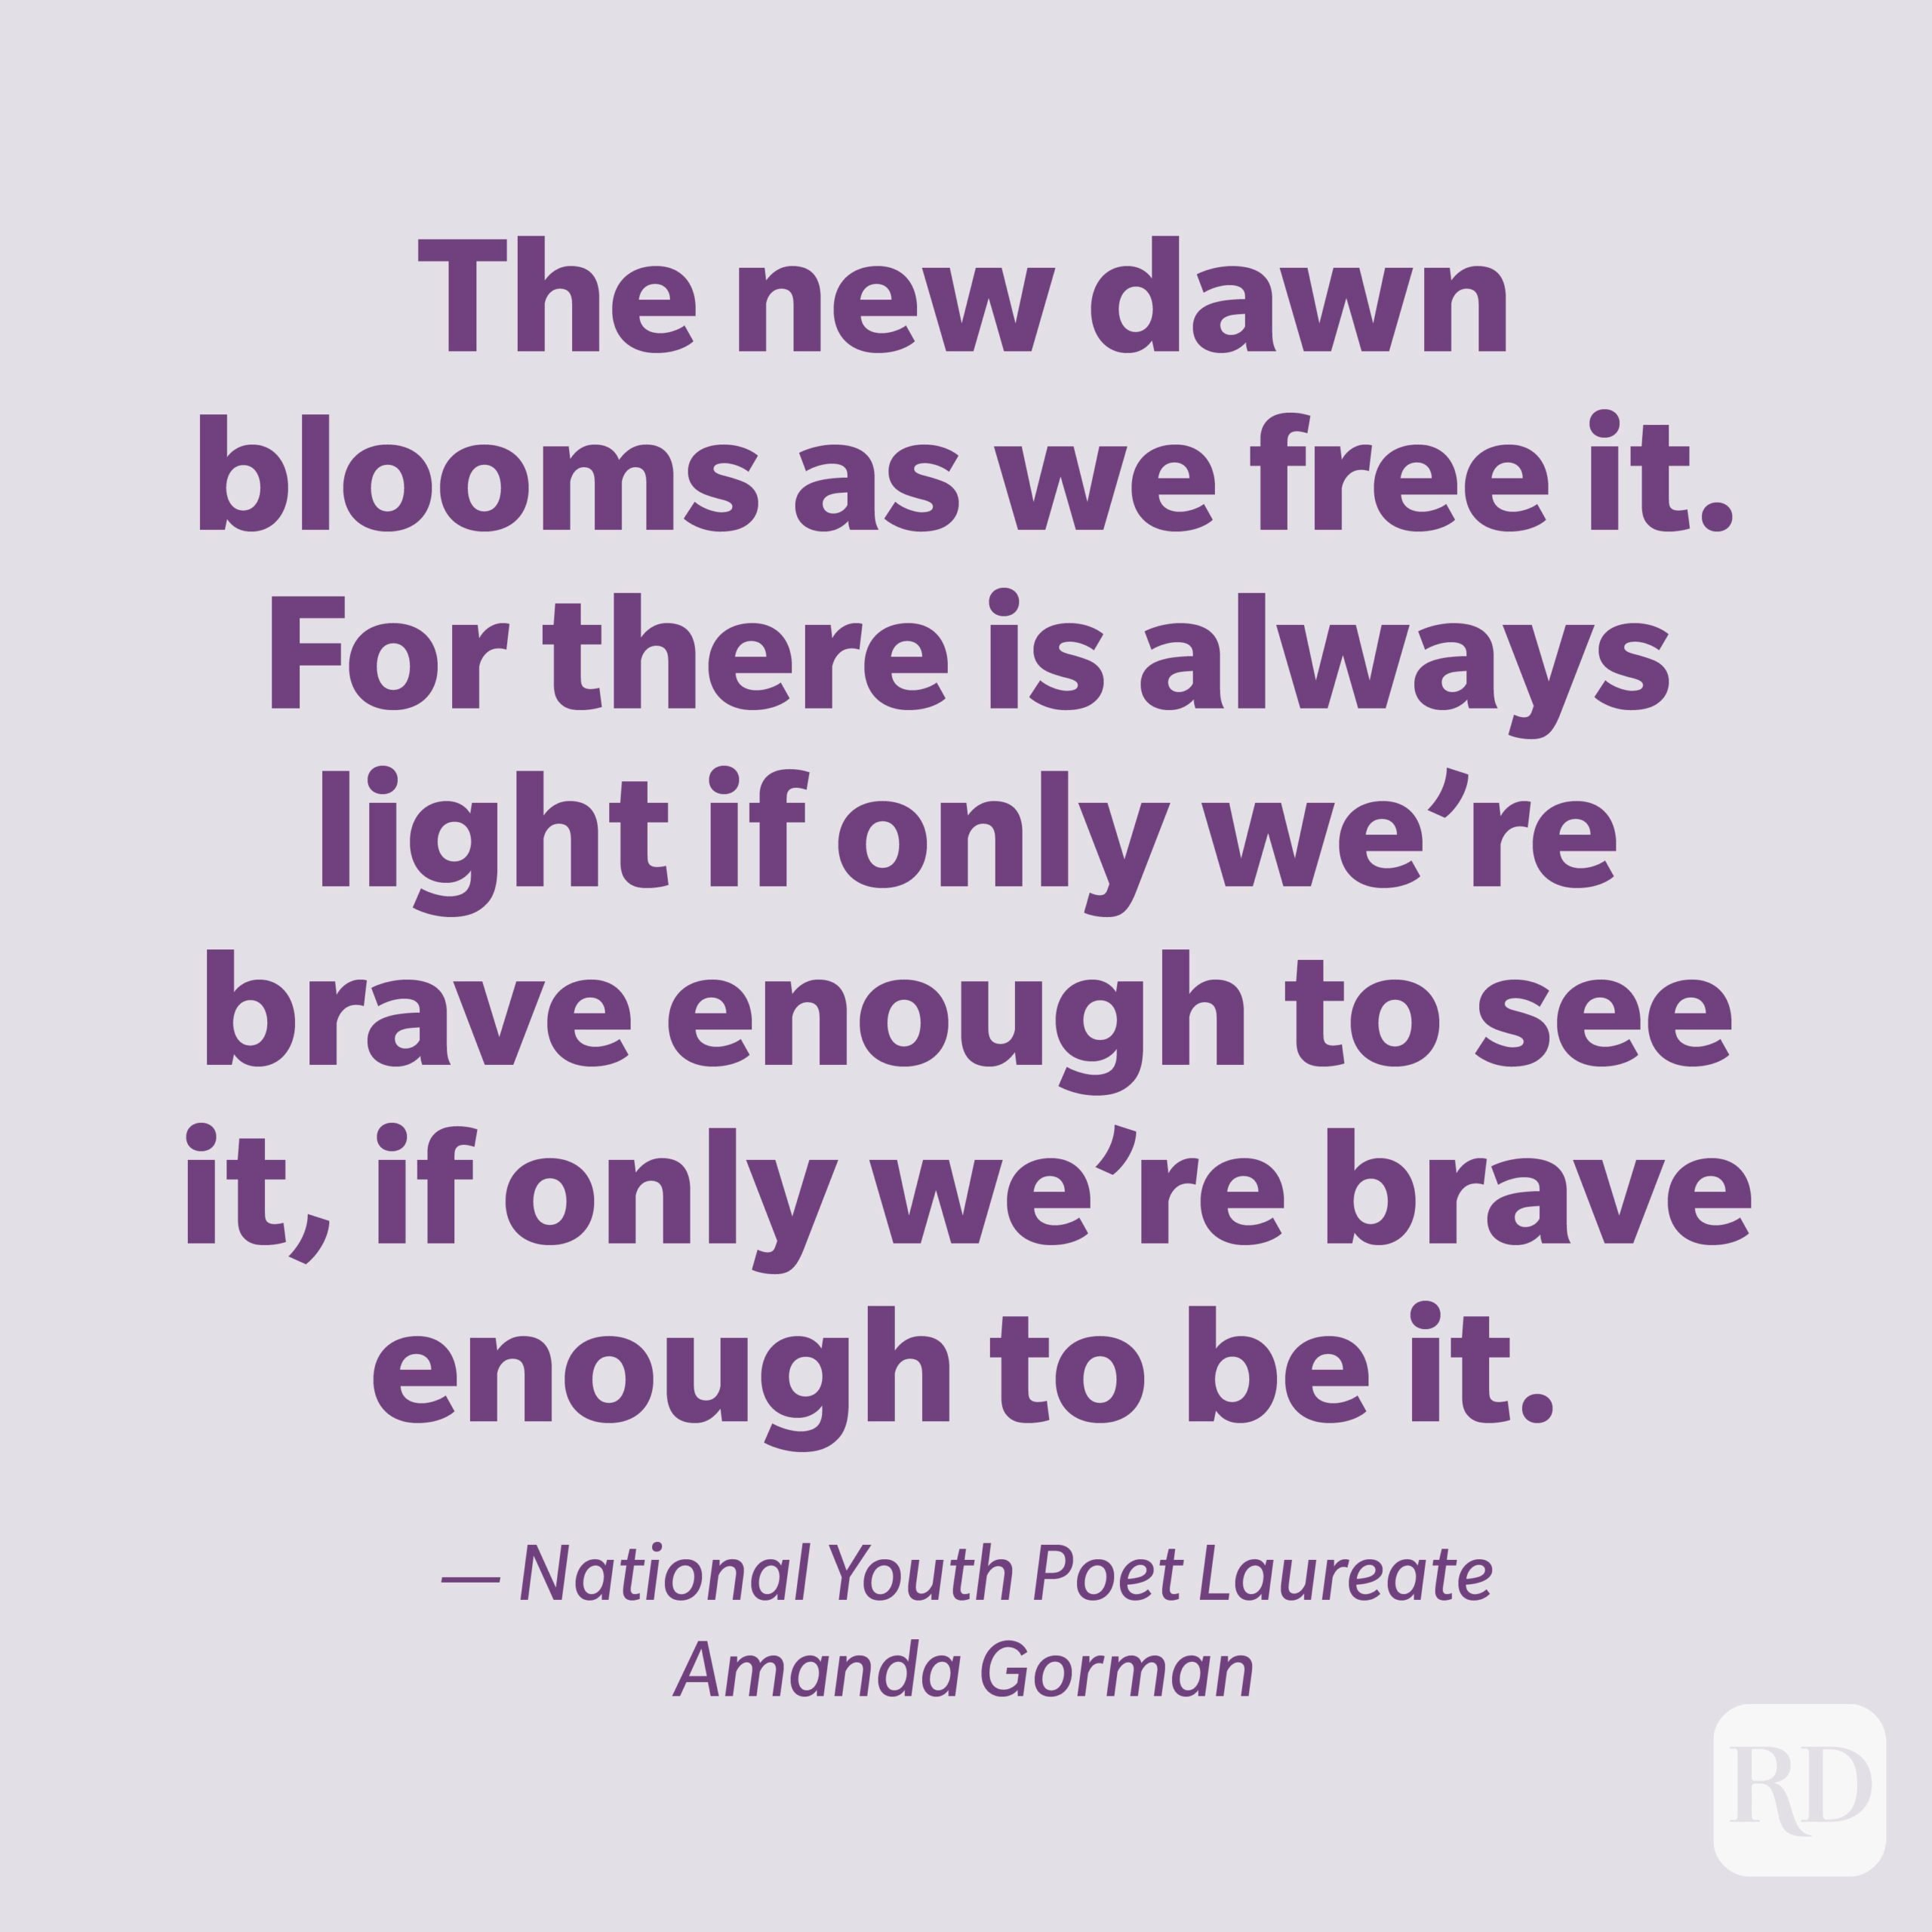 """""""The new dawn blooms as we free it. For there is always light if only we're brave enough to see it, if only we're brave enough to be it."""" — National Youth Poet Laureate Amanda Gorman"""